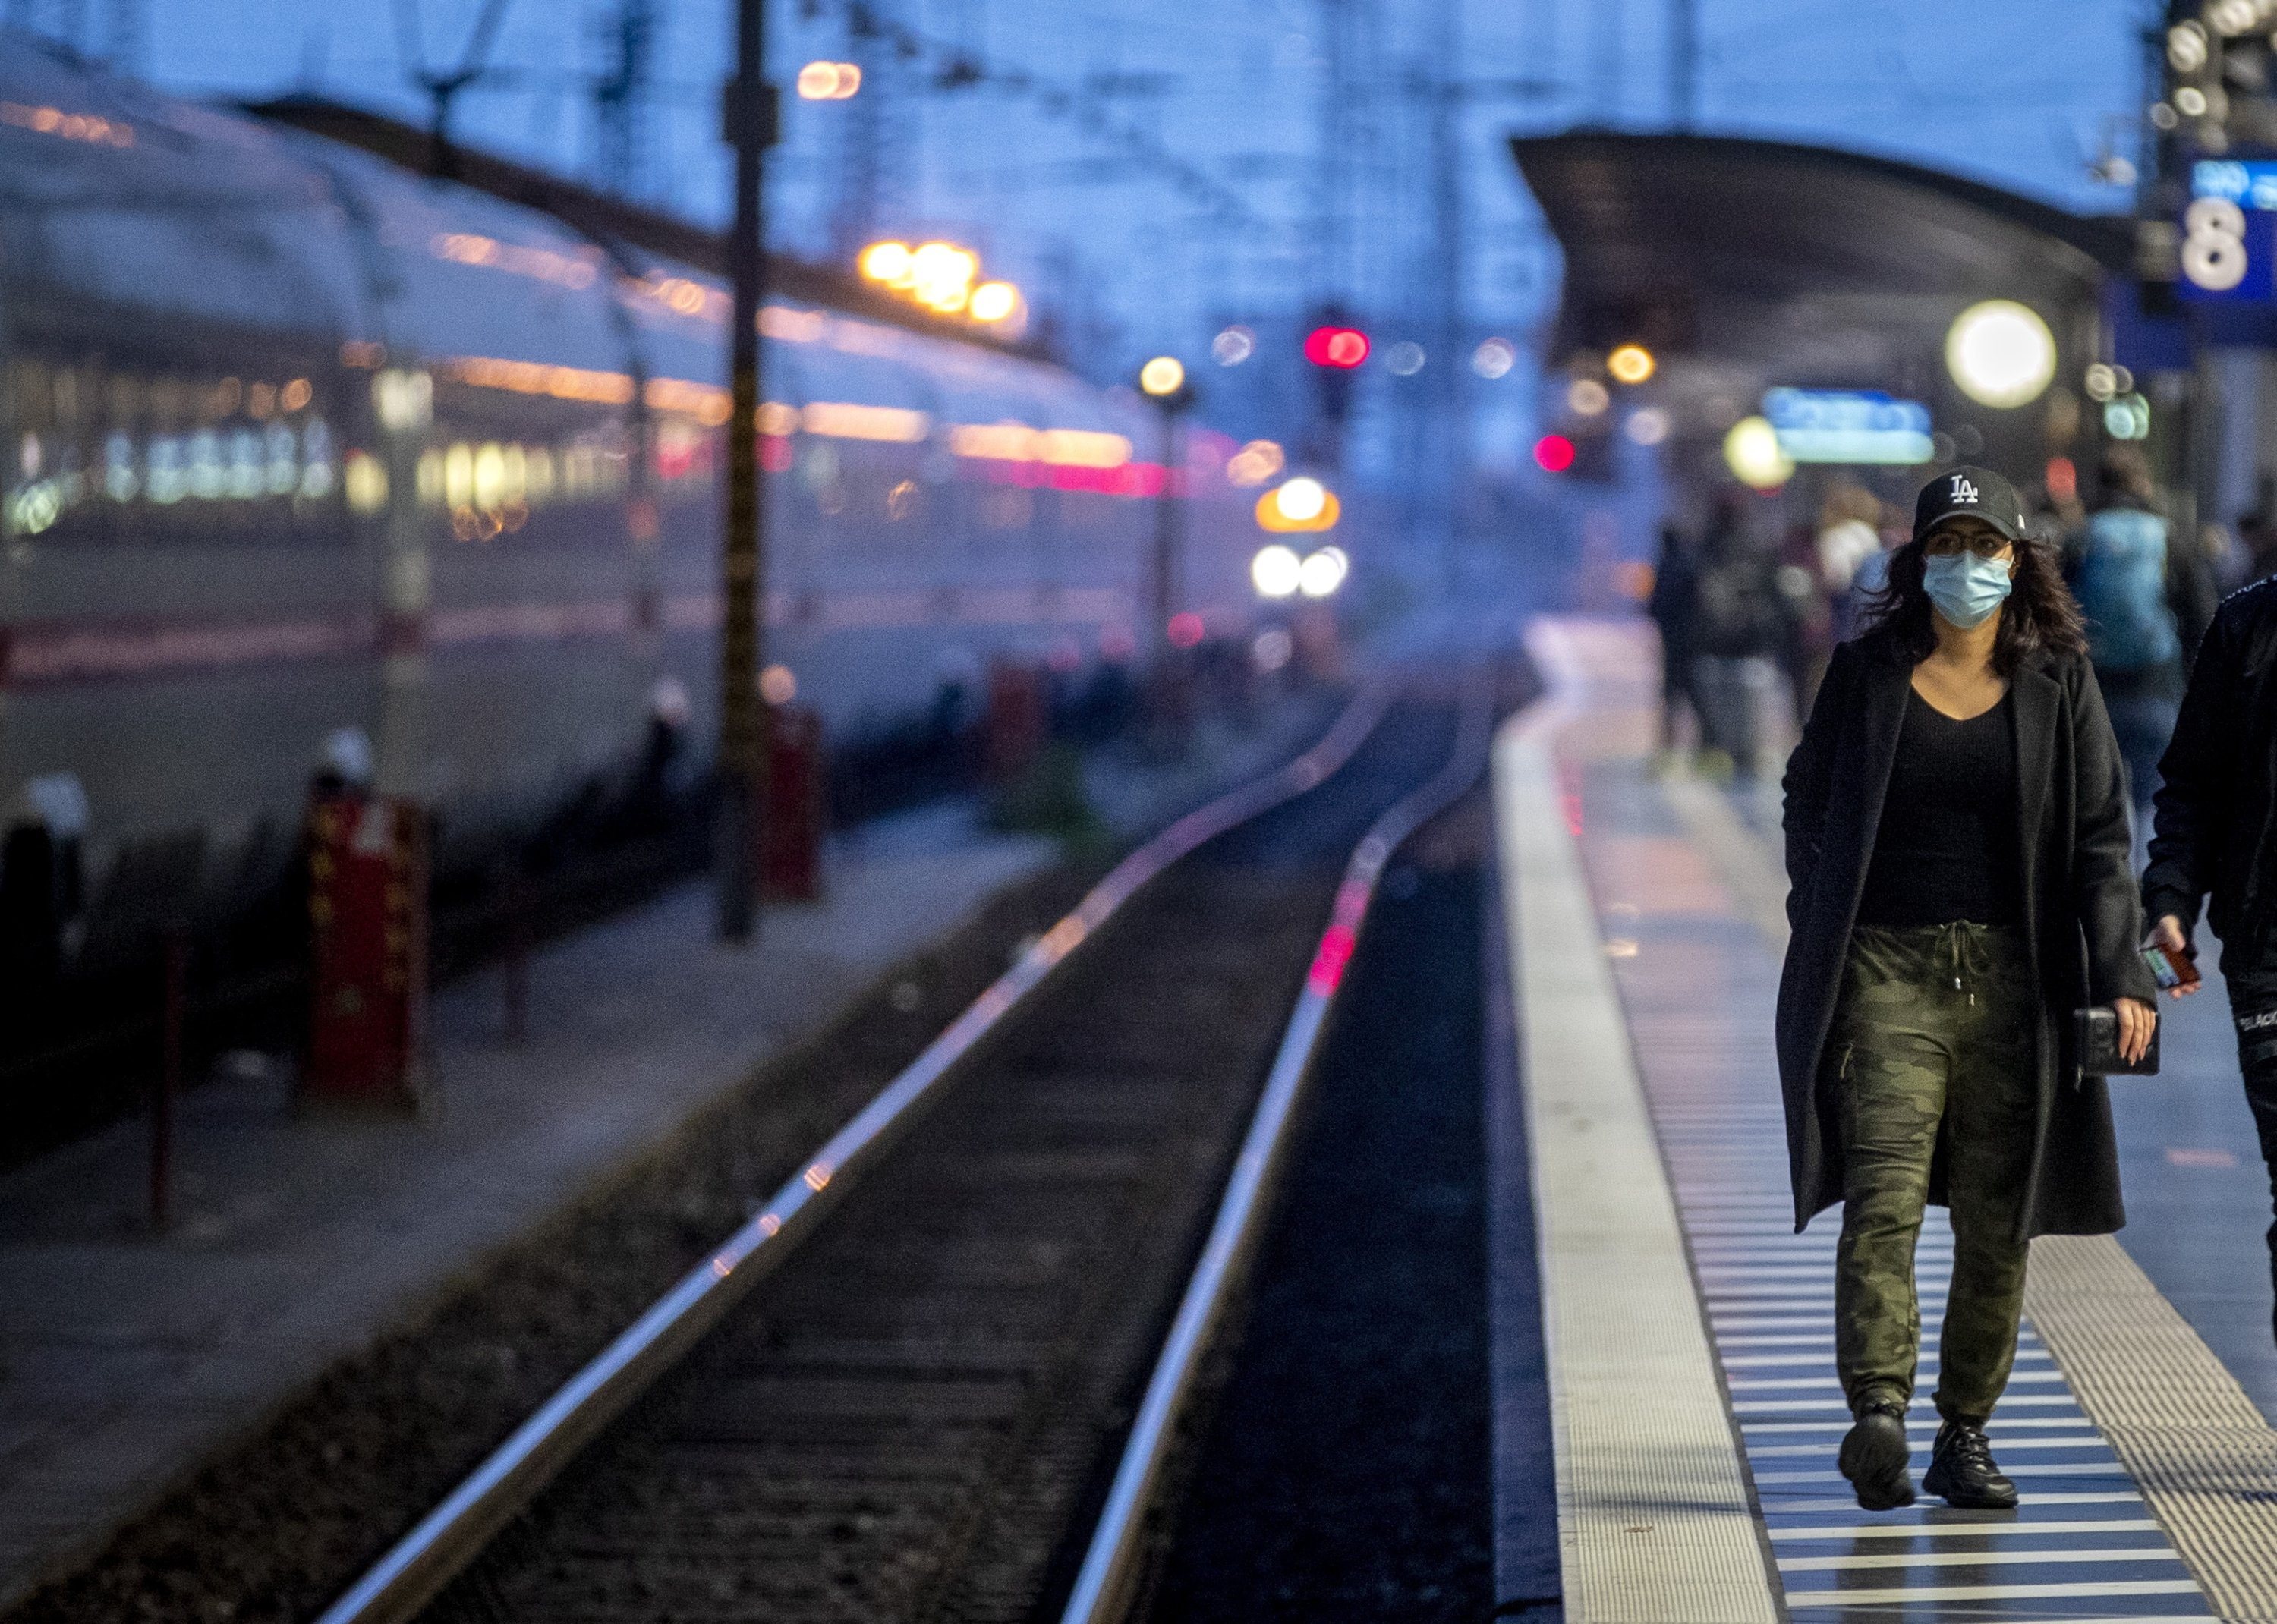 A traveller wearing a face mask arrives at the main train station in Frankfurt, Germany, Sunday, Nov. 8, 2020. (AP Photo)